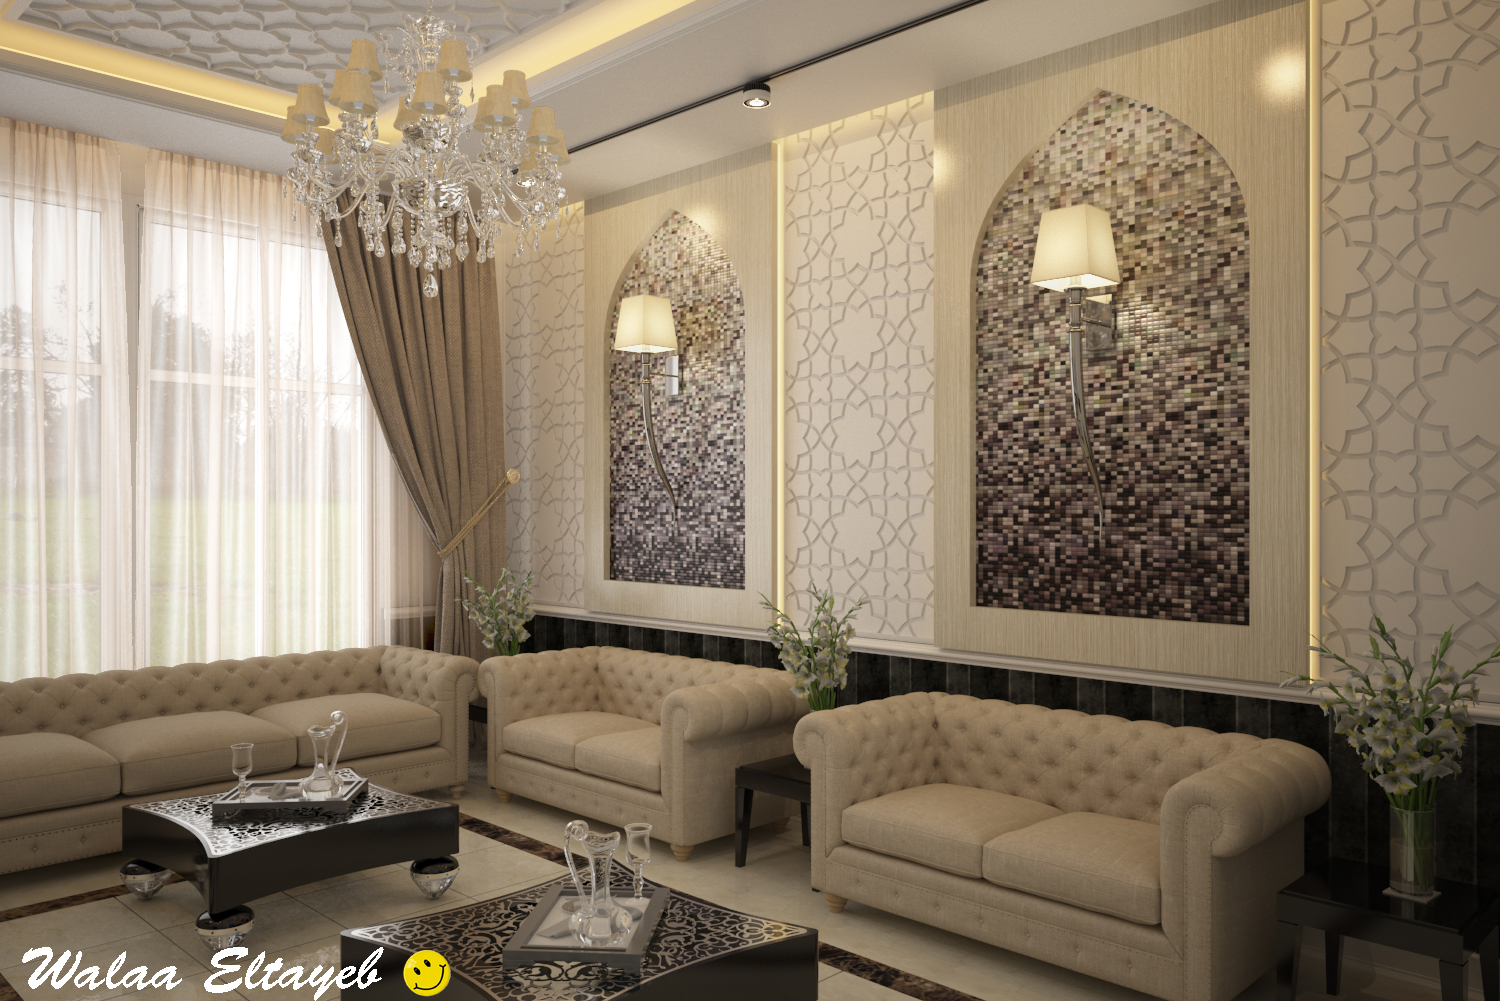 Salon interance hall walaadesigns for Interior designs videos